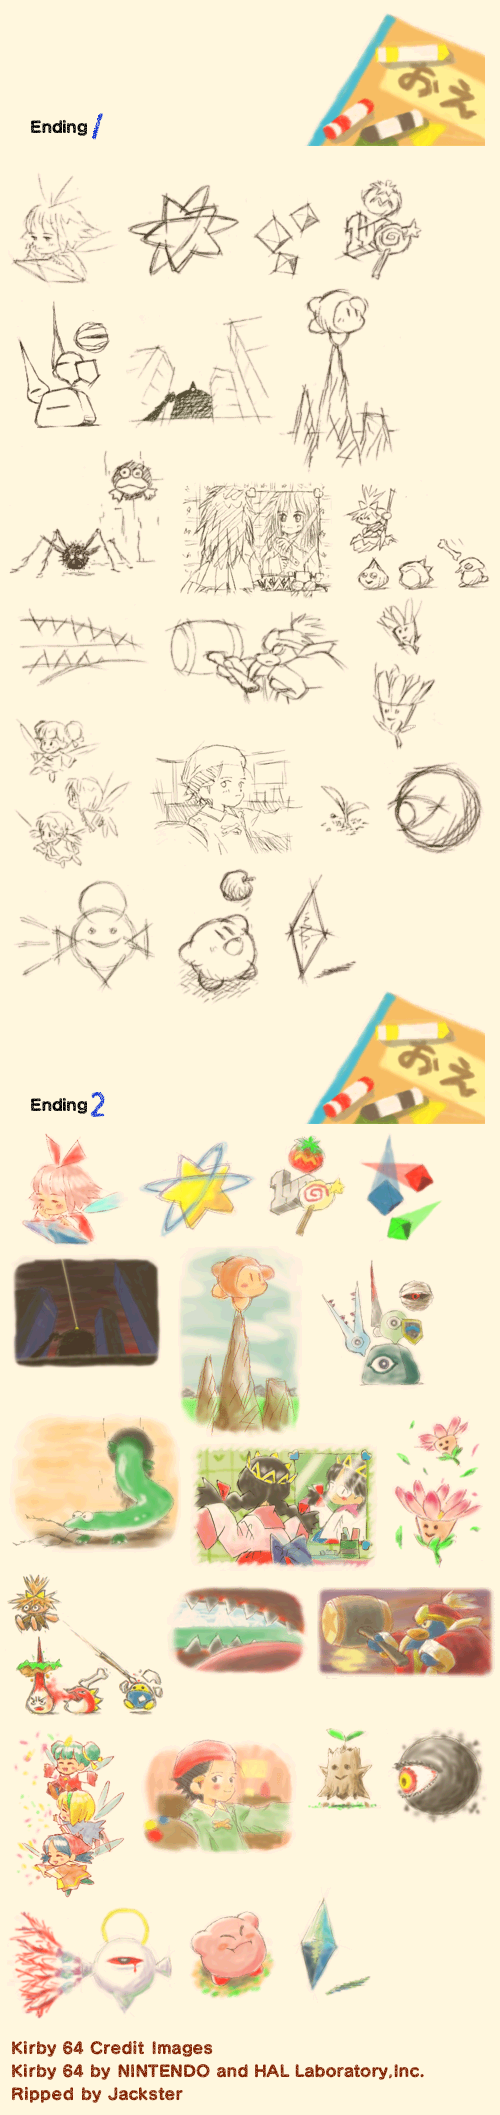 Nintendo 64 - Kirby 64: The Crystal Shards - Ending Sketches